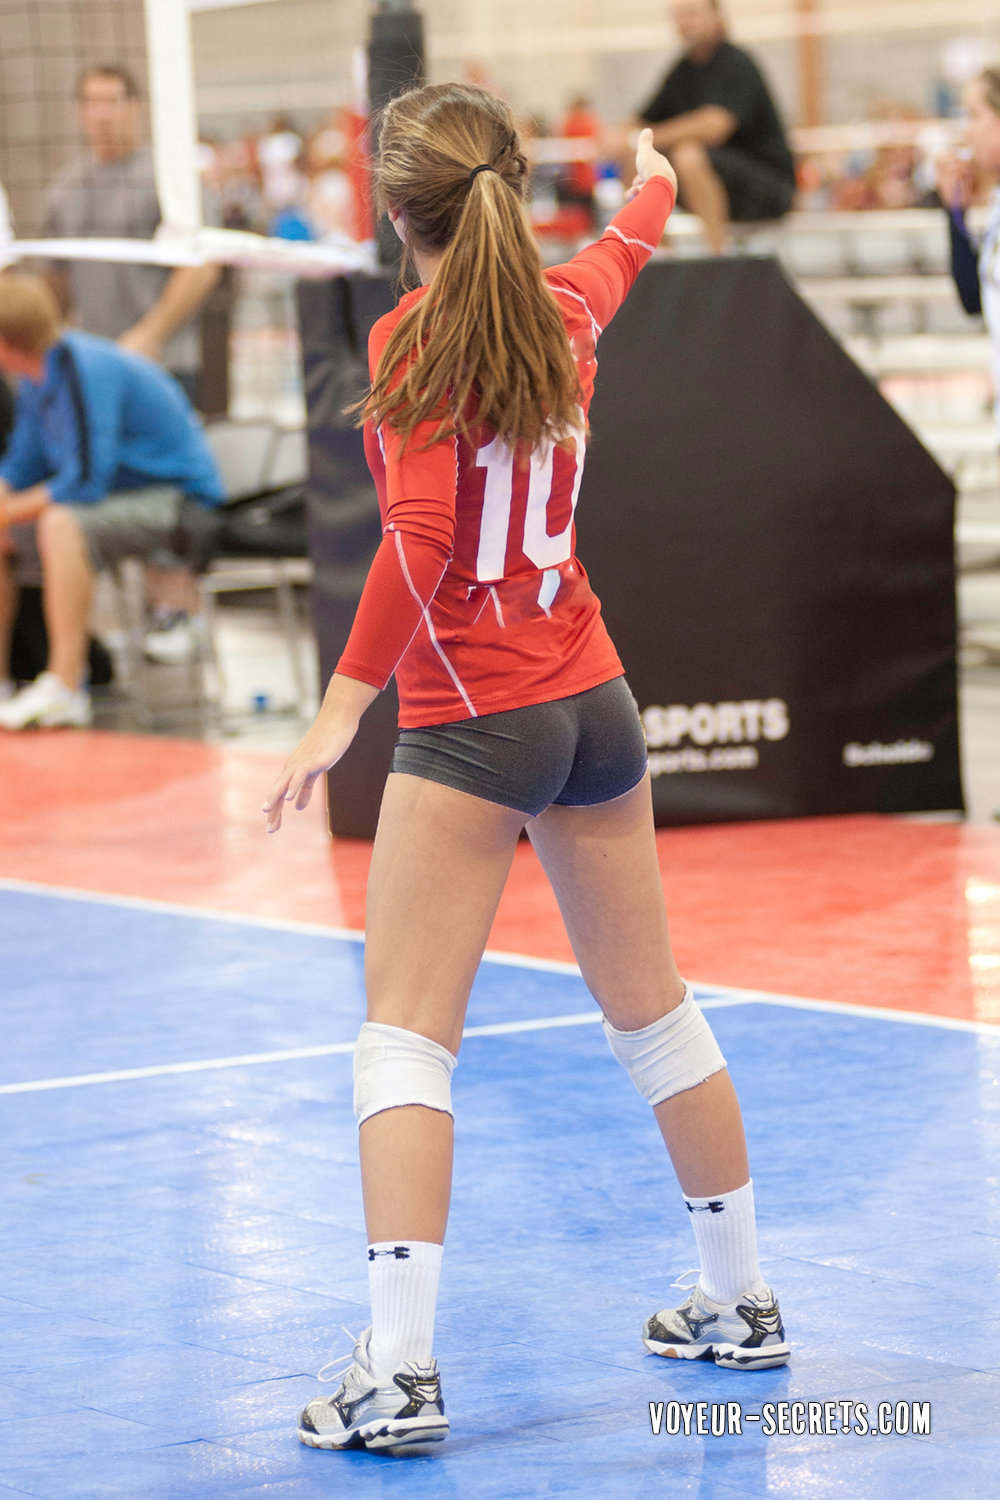 Volleyball voyeur galleries